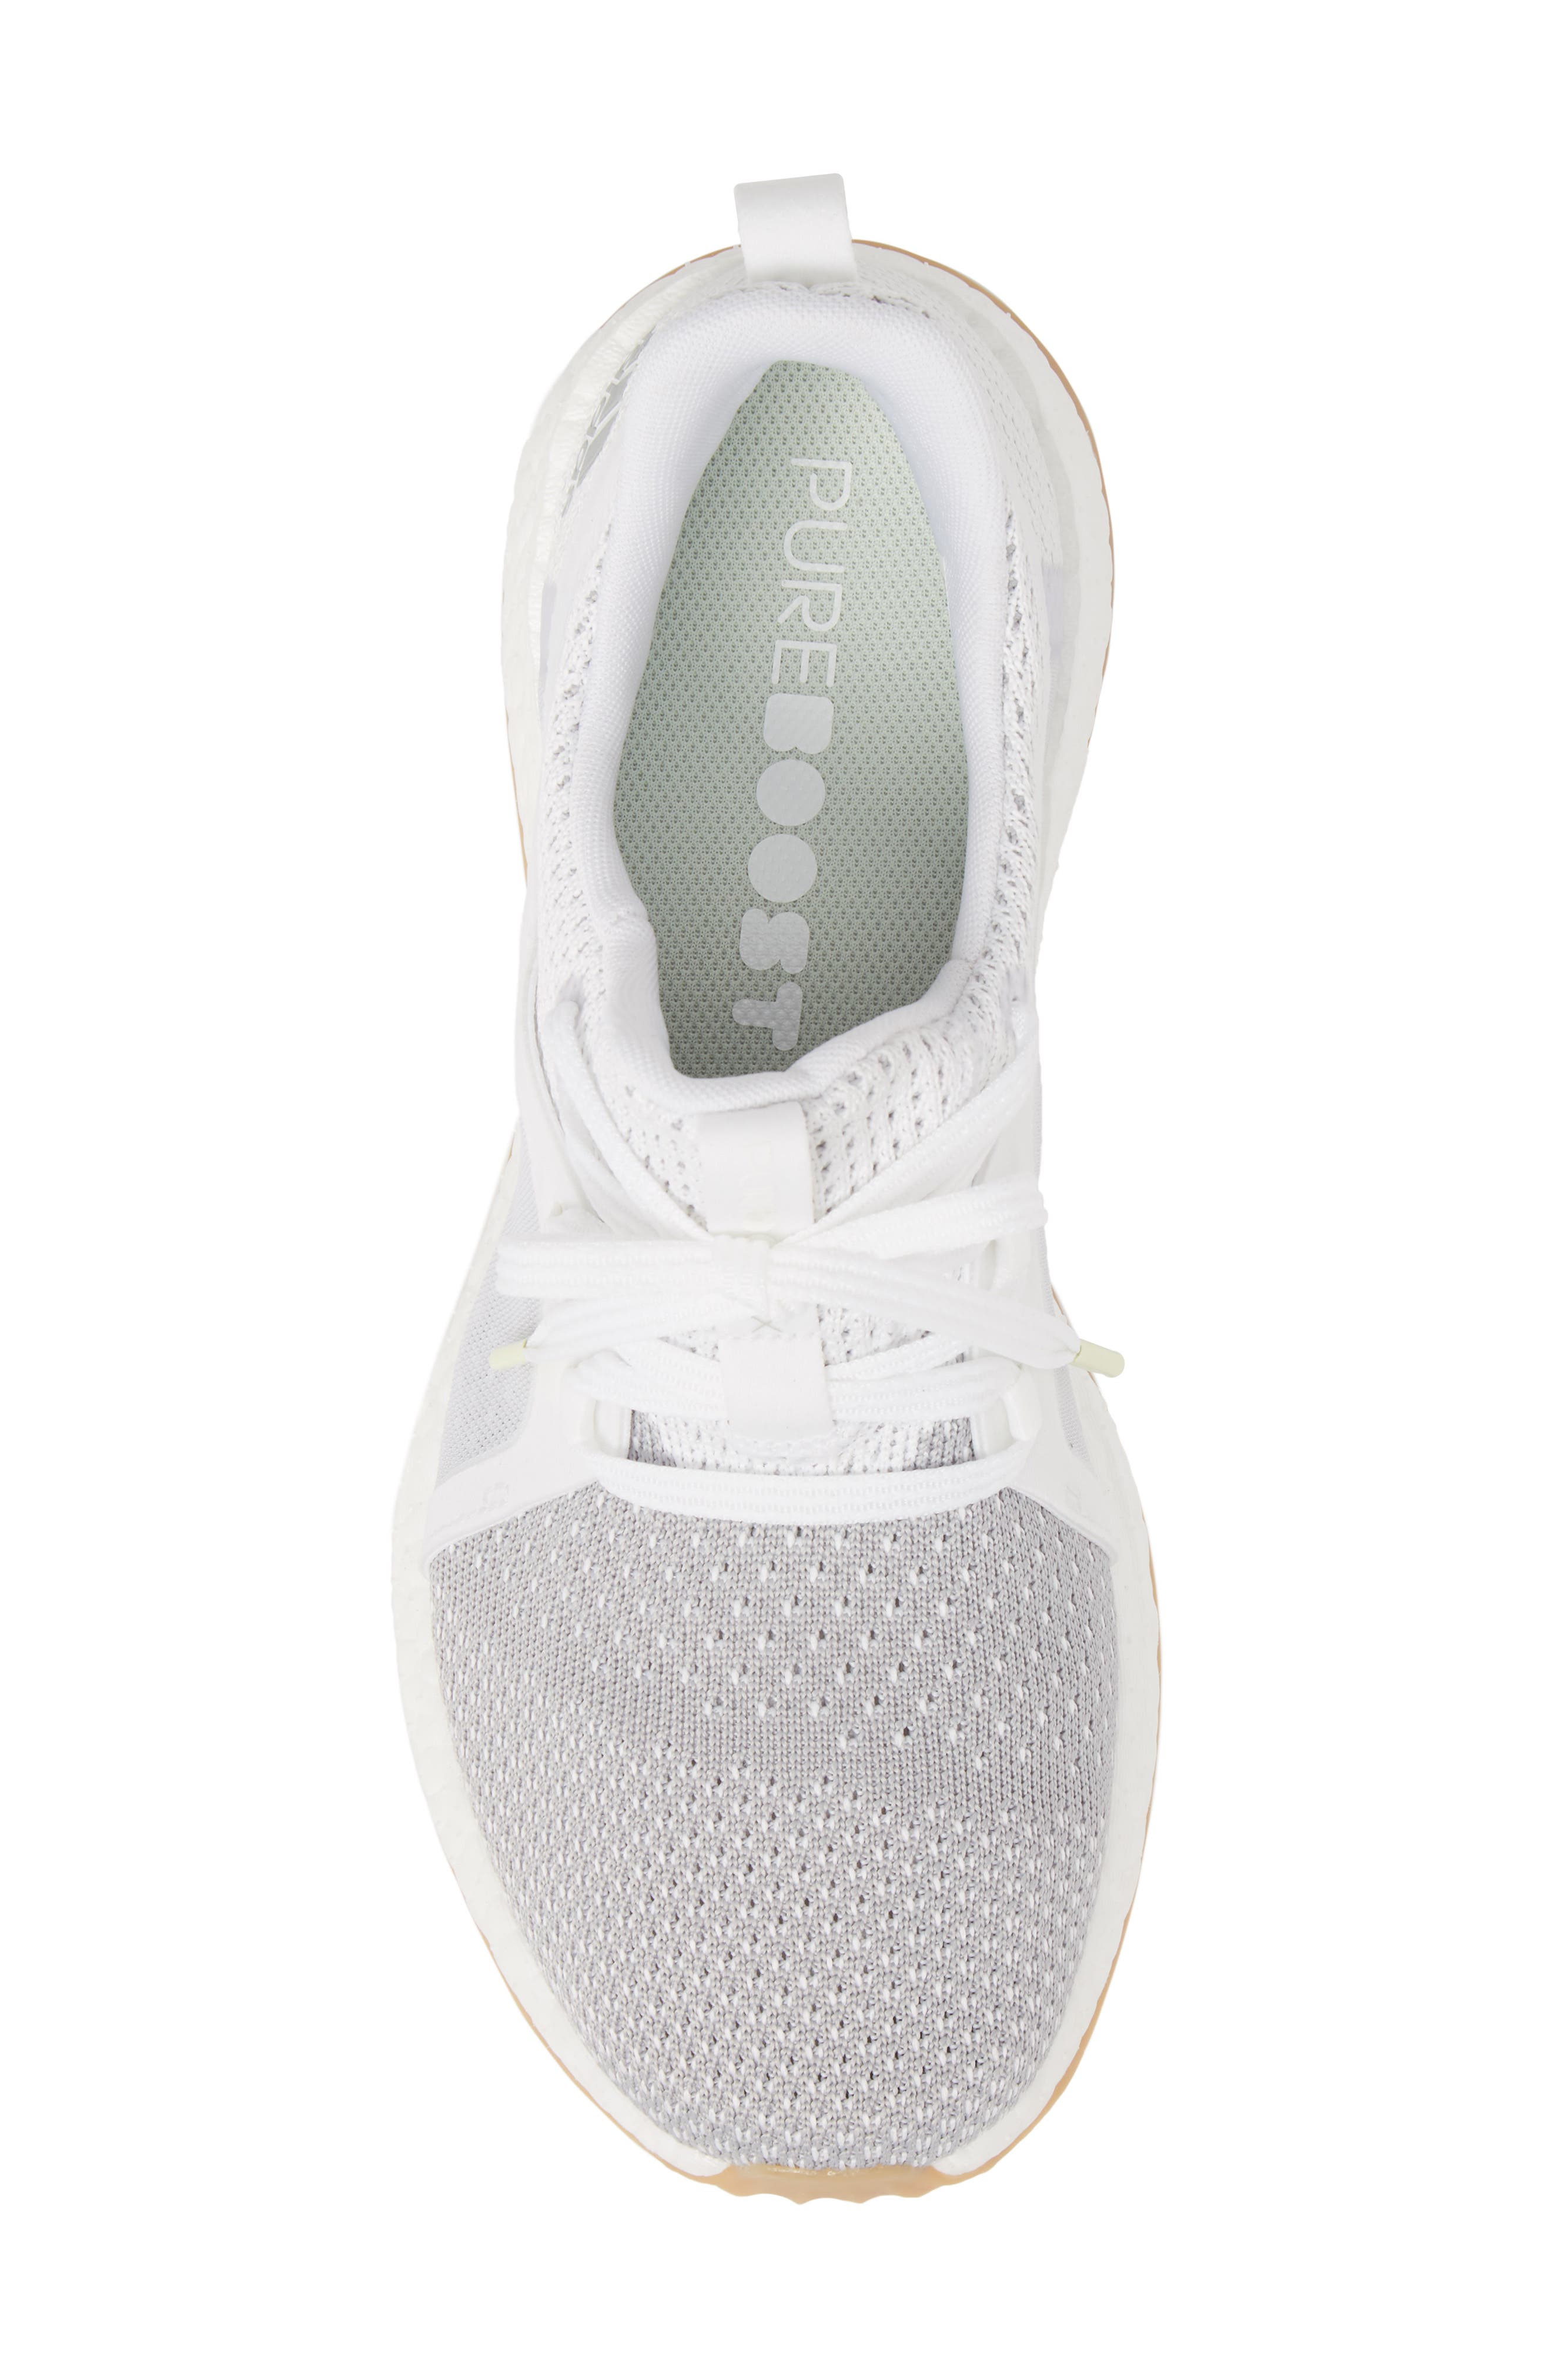 Pureboost X Clima Sneaker,                             Alternate thumbnail 5, color,                             100